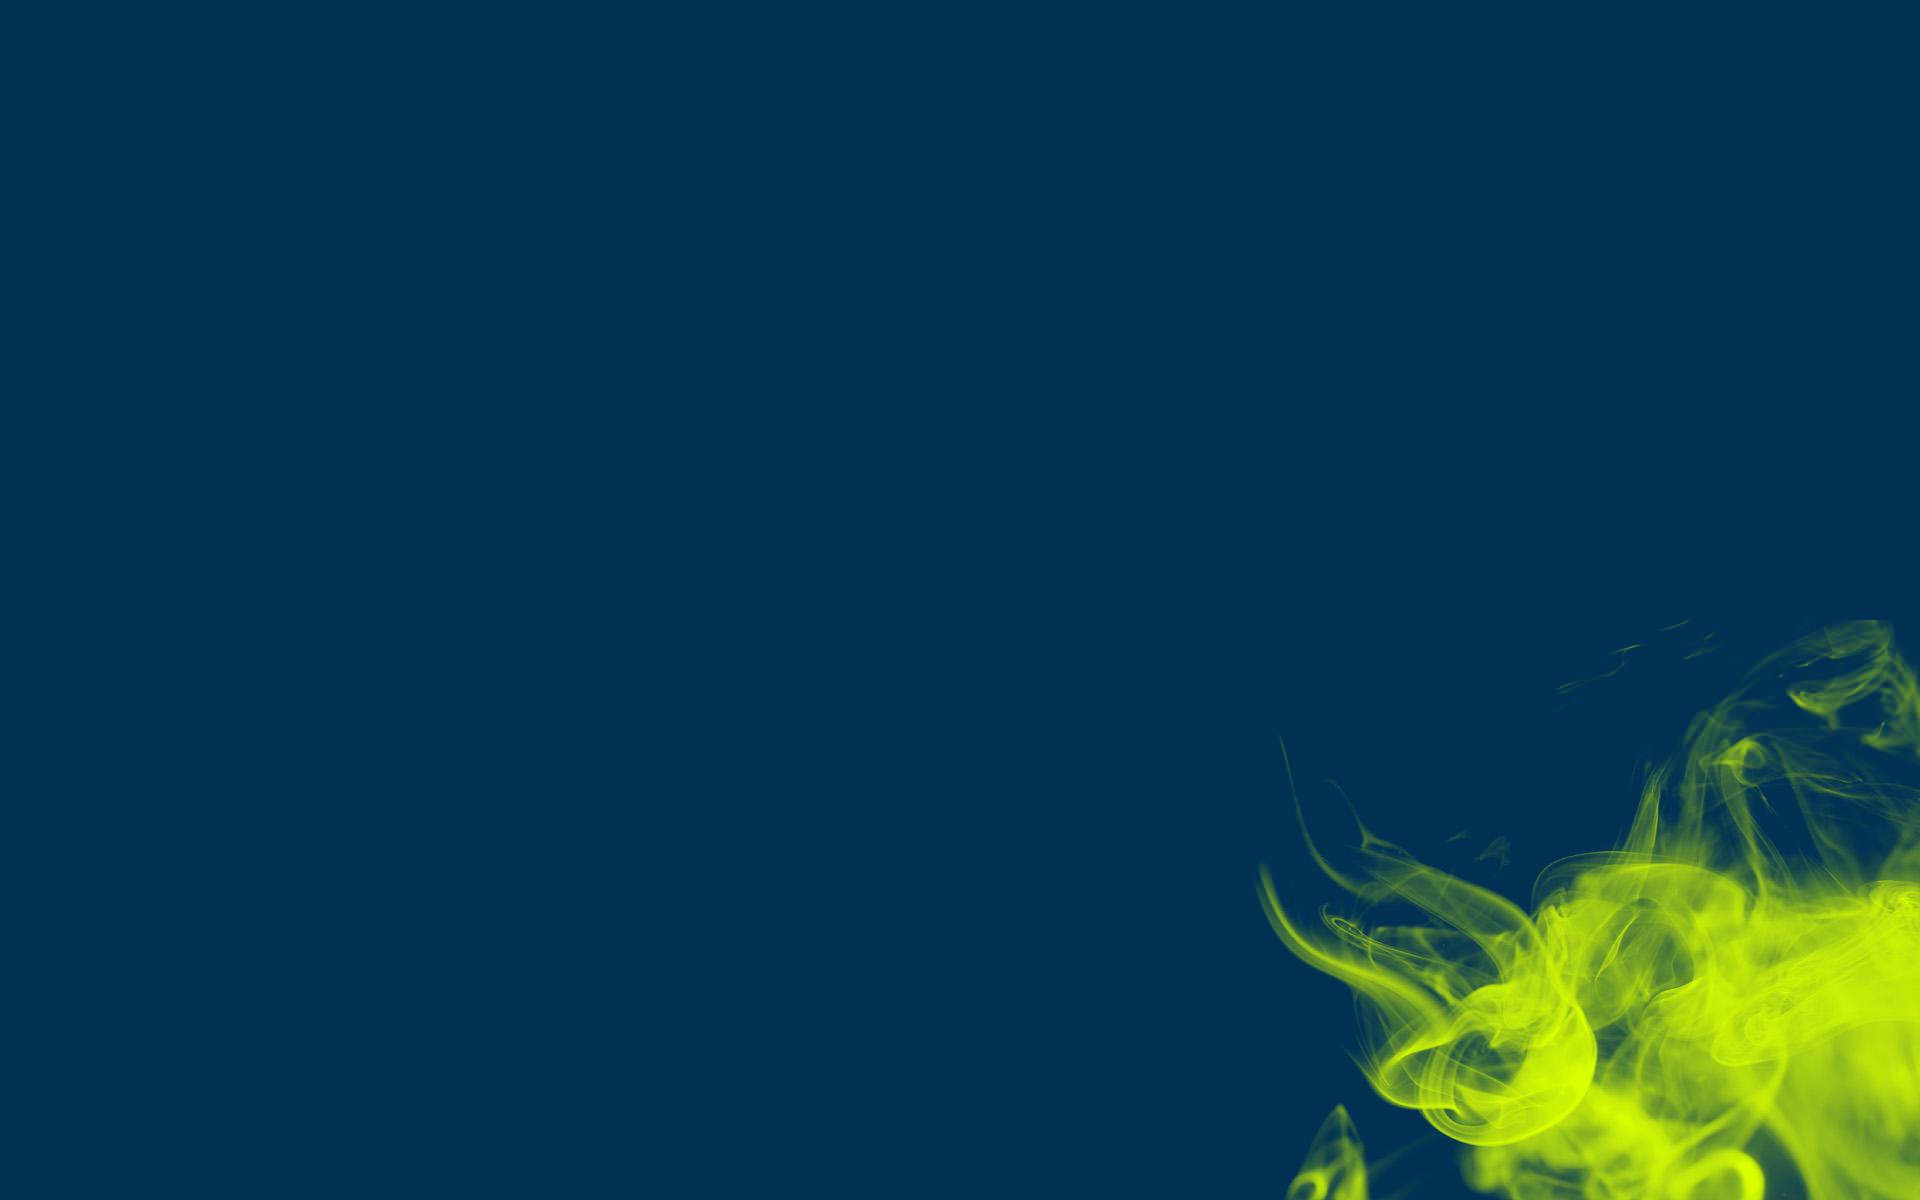 1920x1200 Solid Blue & Yellow Background For Free